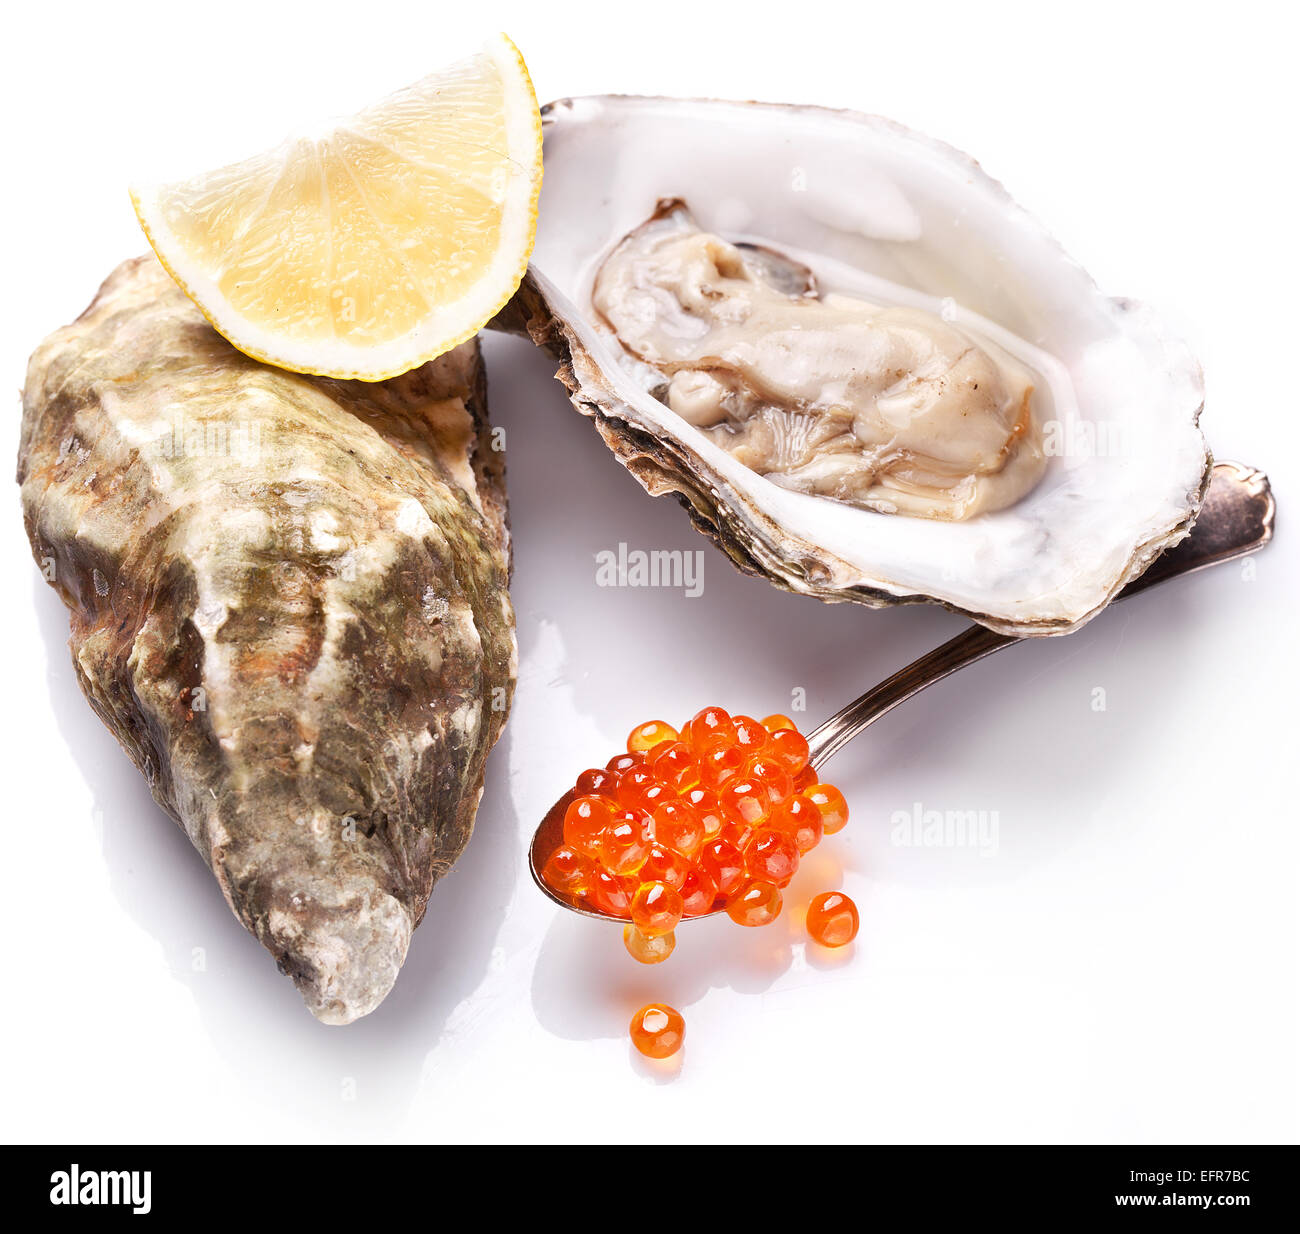 Raw oyster,lemon and red caviar isolated on a white background. - Stock Image